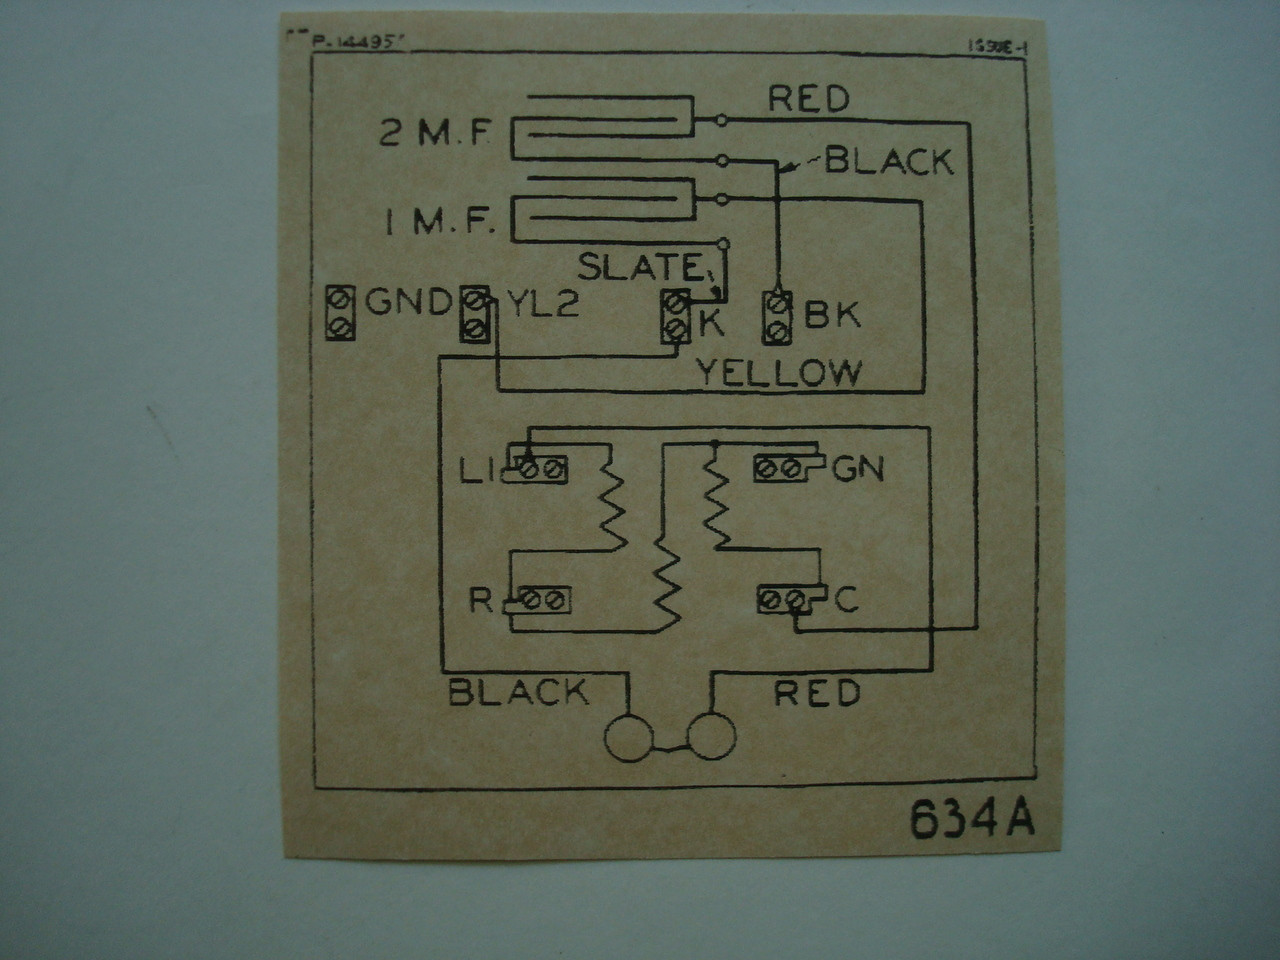 634 subset ringer    wiring       diagram    glue on  Old    Phone    Shop